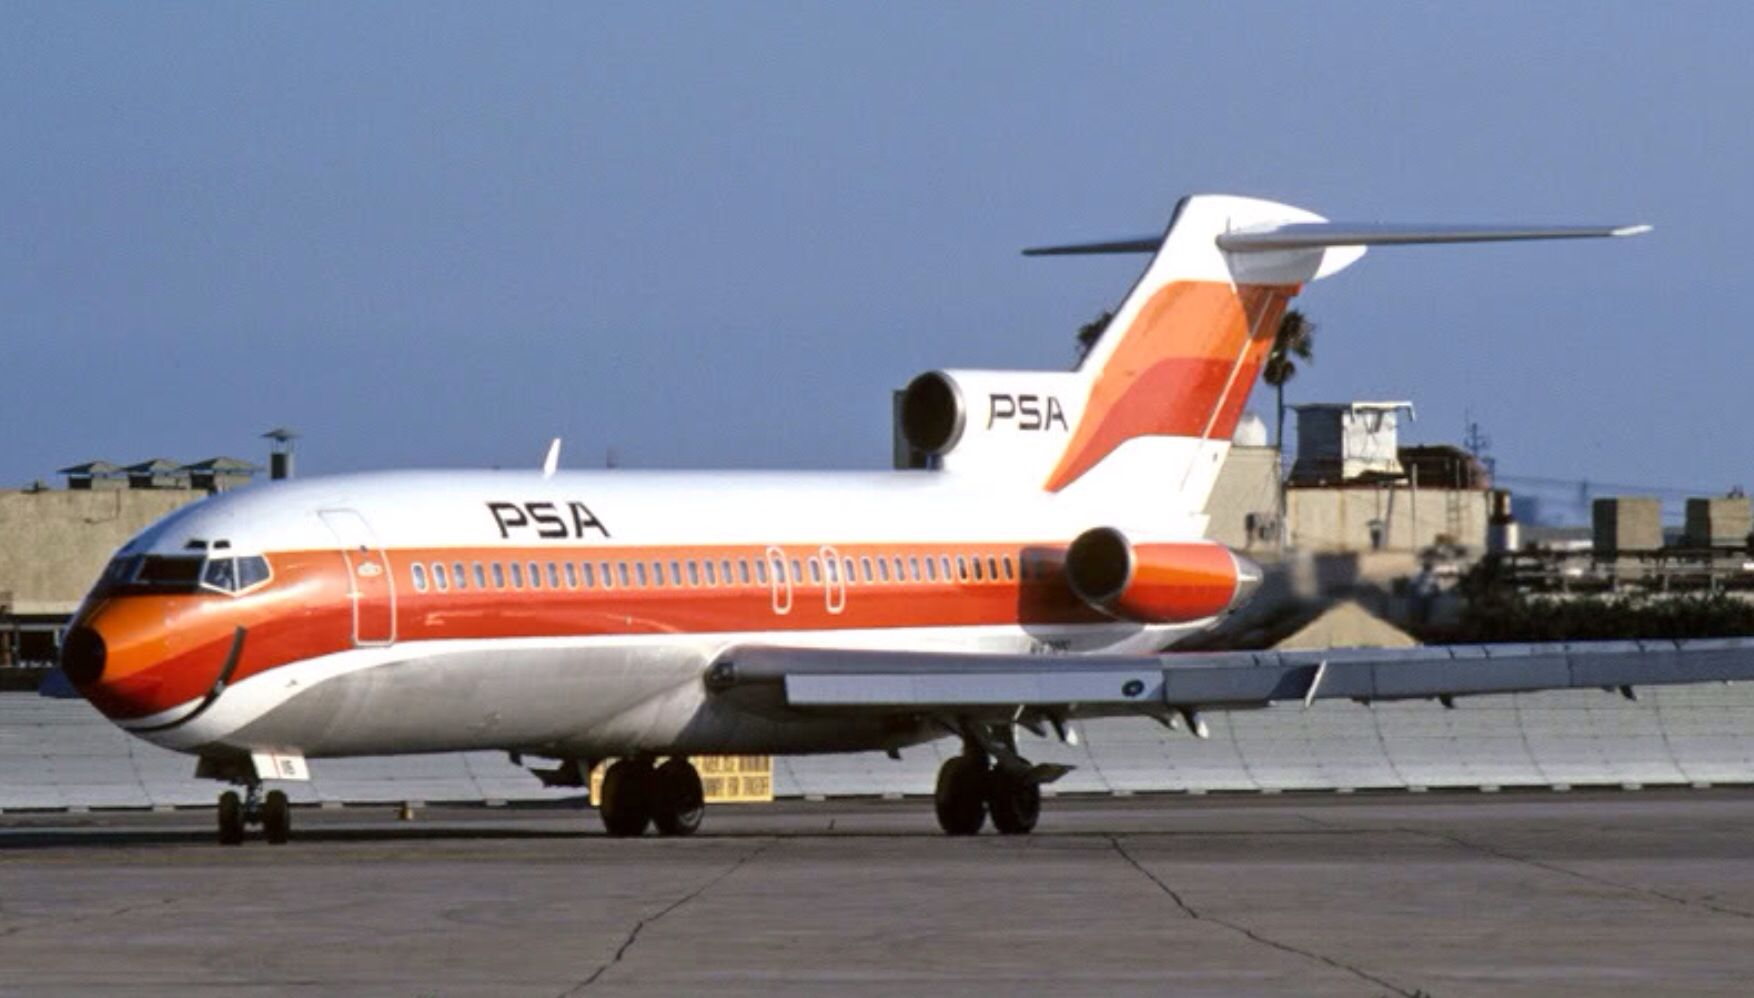 PSA 727100 1973 Boeing aircraft, Commercial aircraft